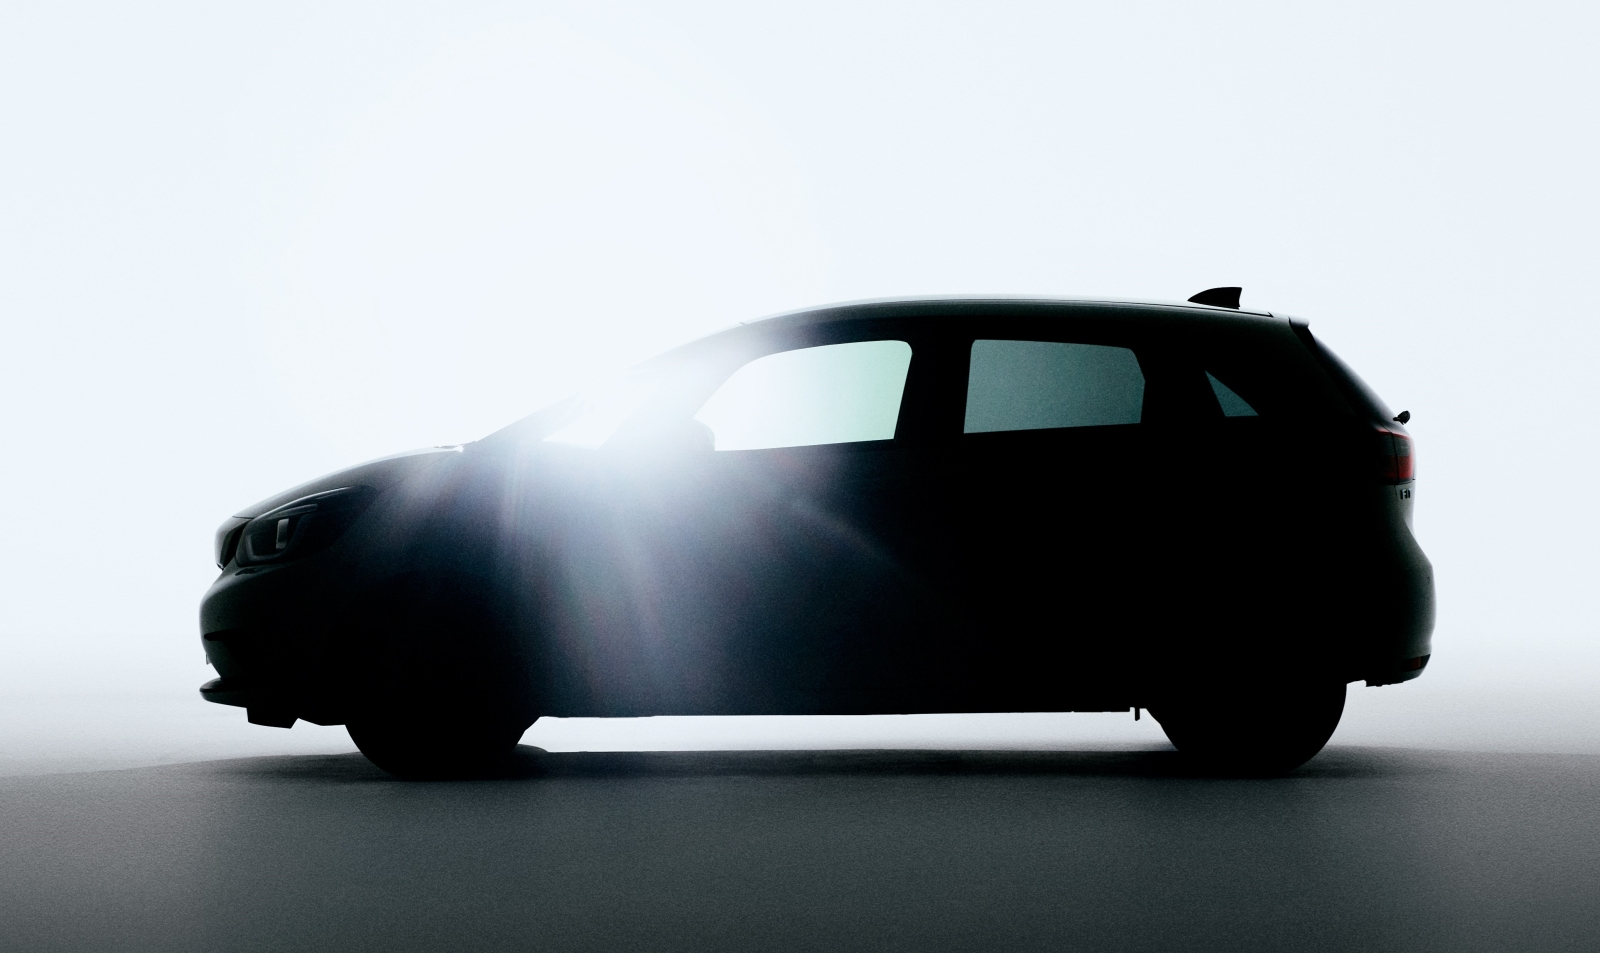 Honda teases image of next generation Jazz